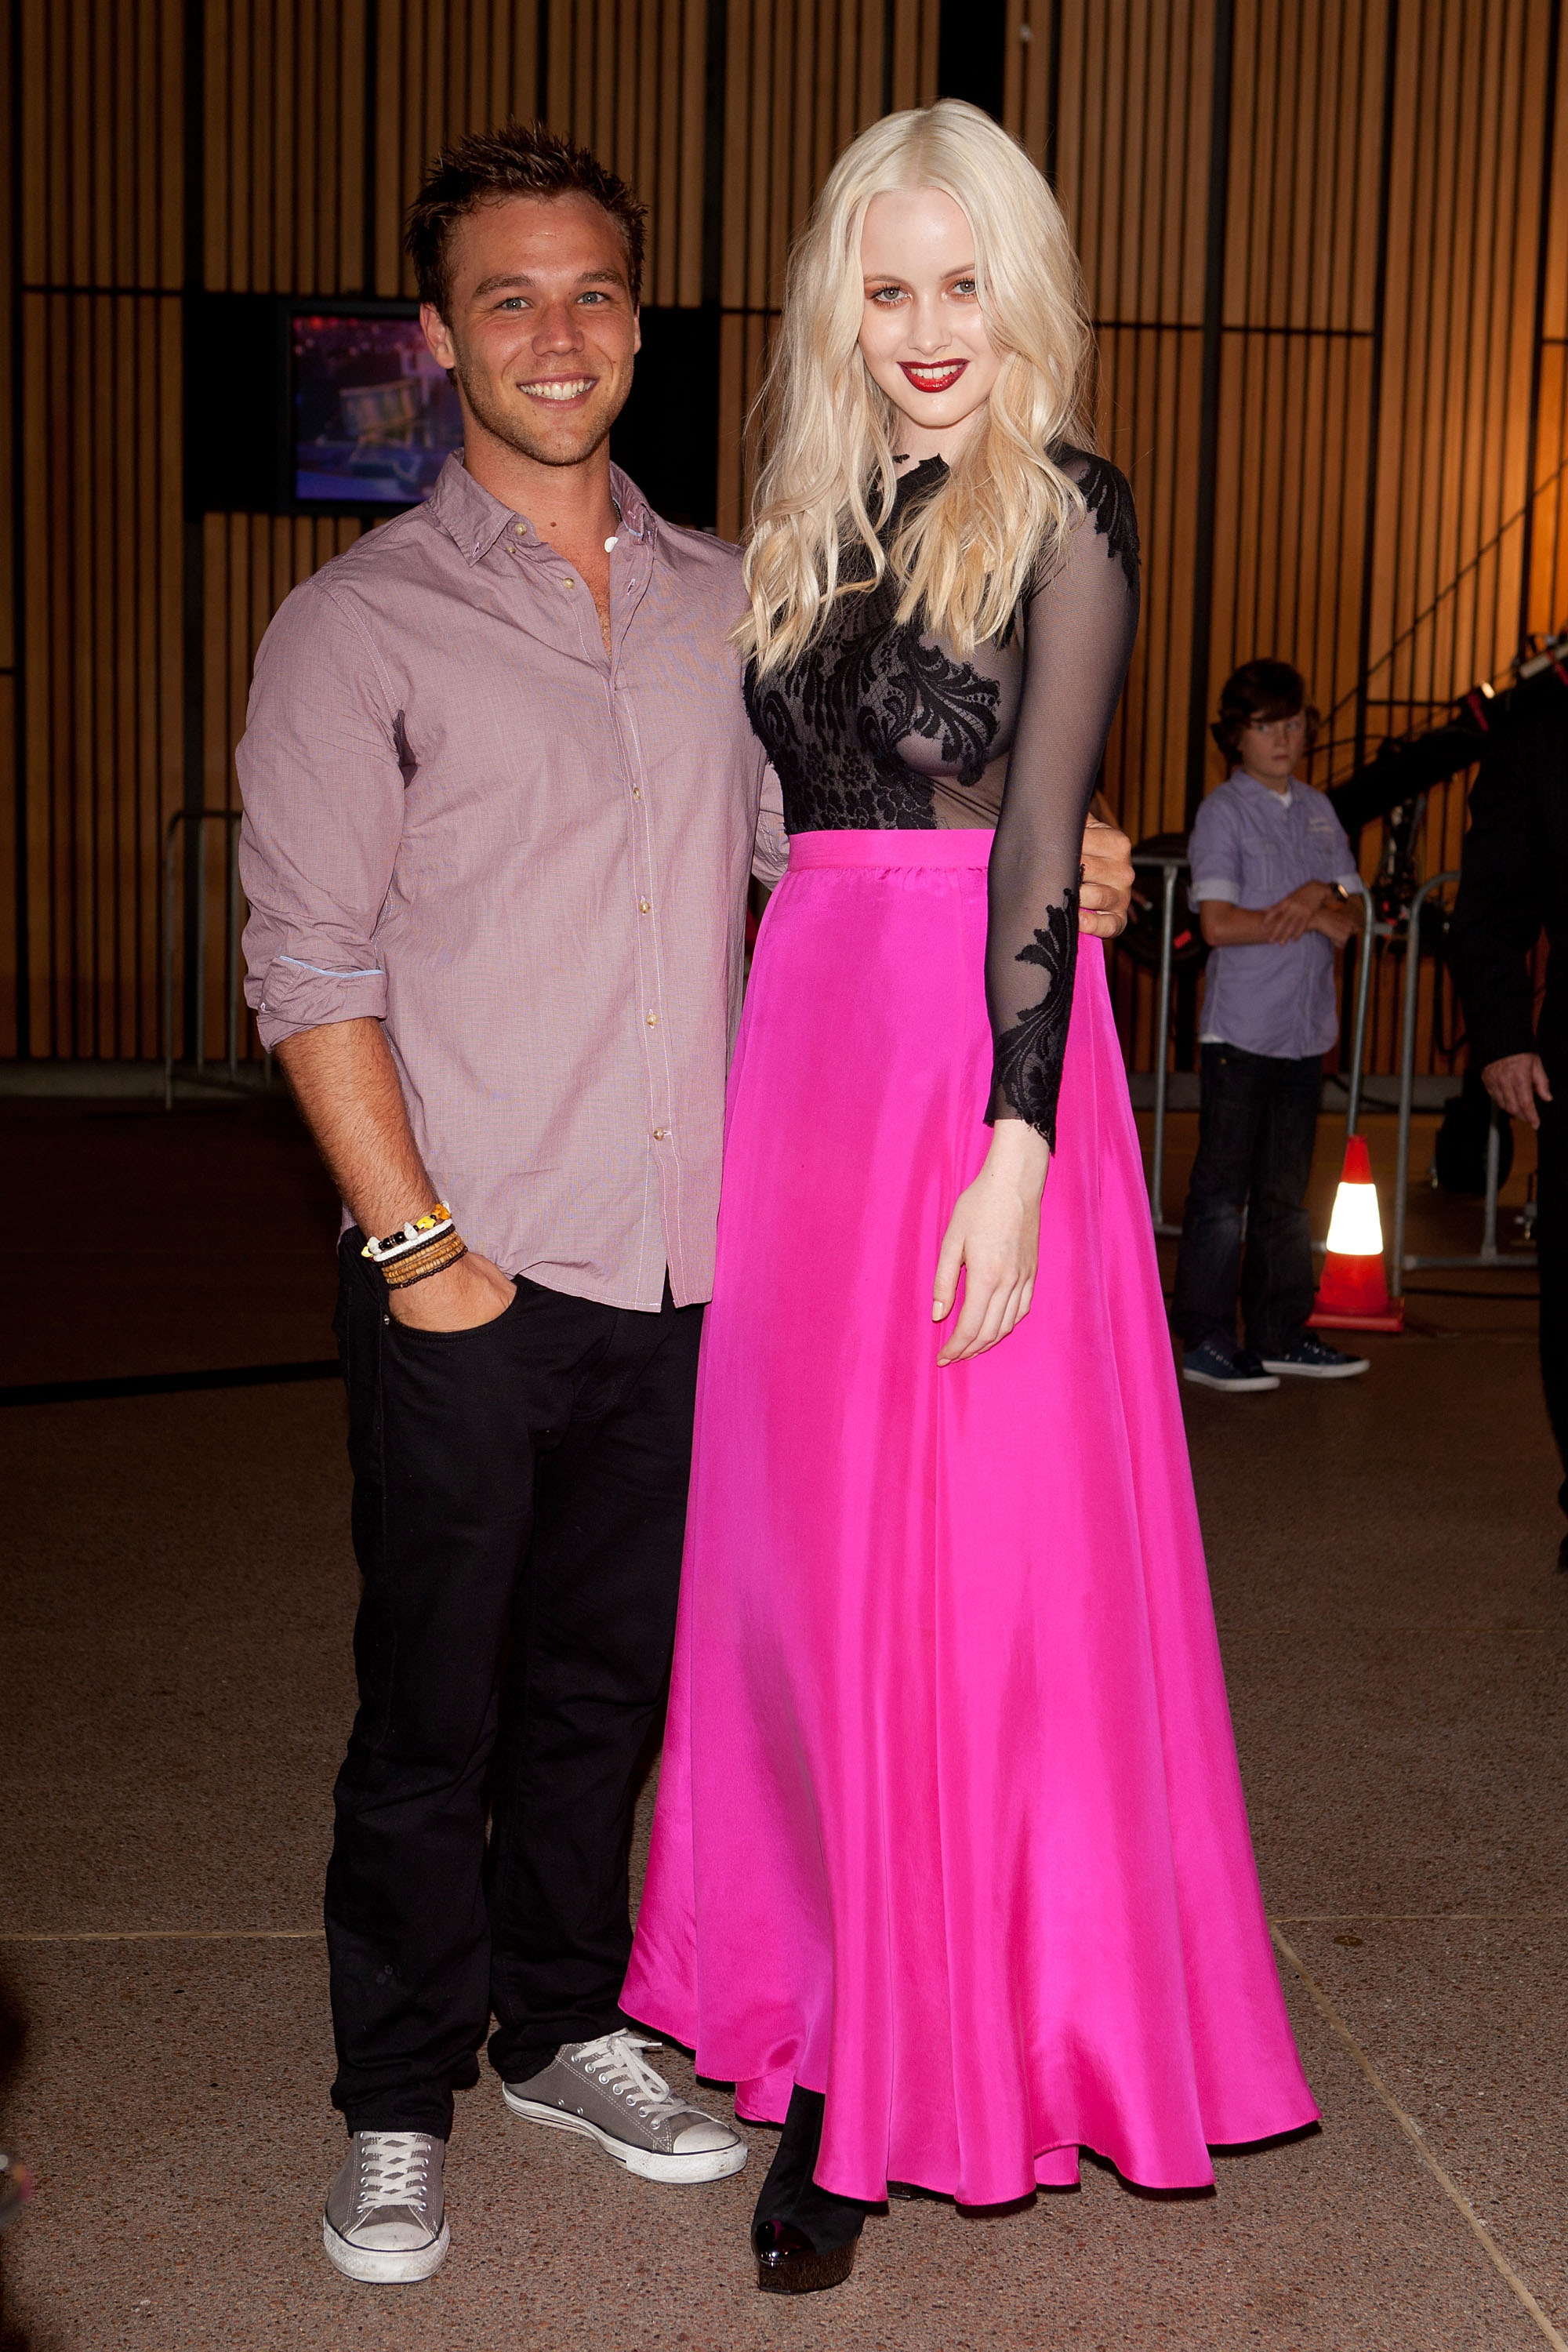 Lincoln Lewis and Simone Holtznagel